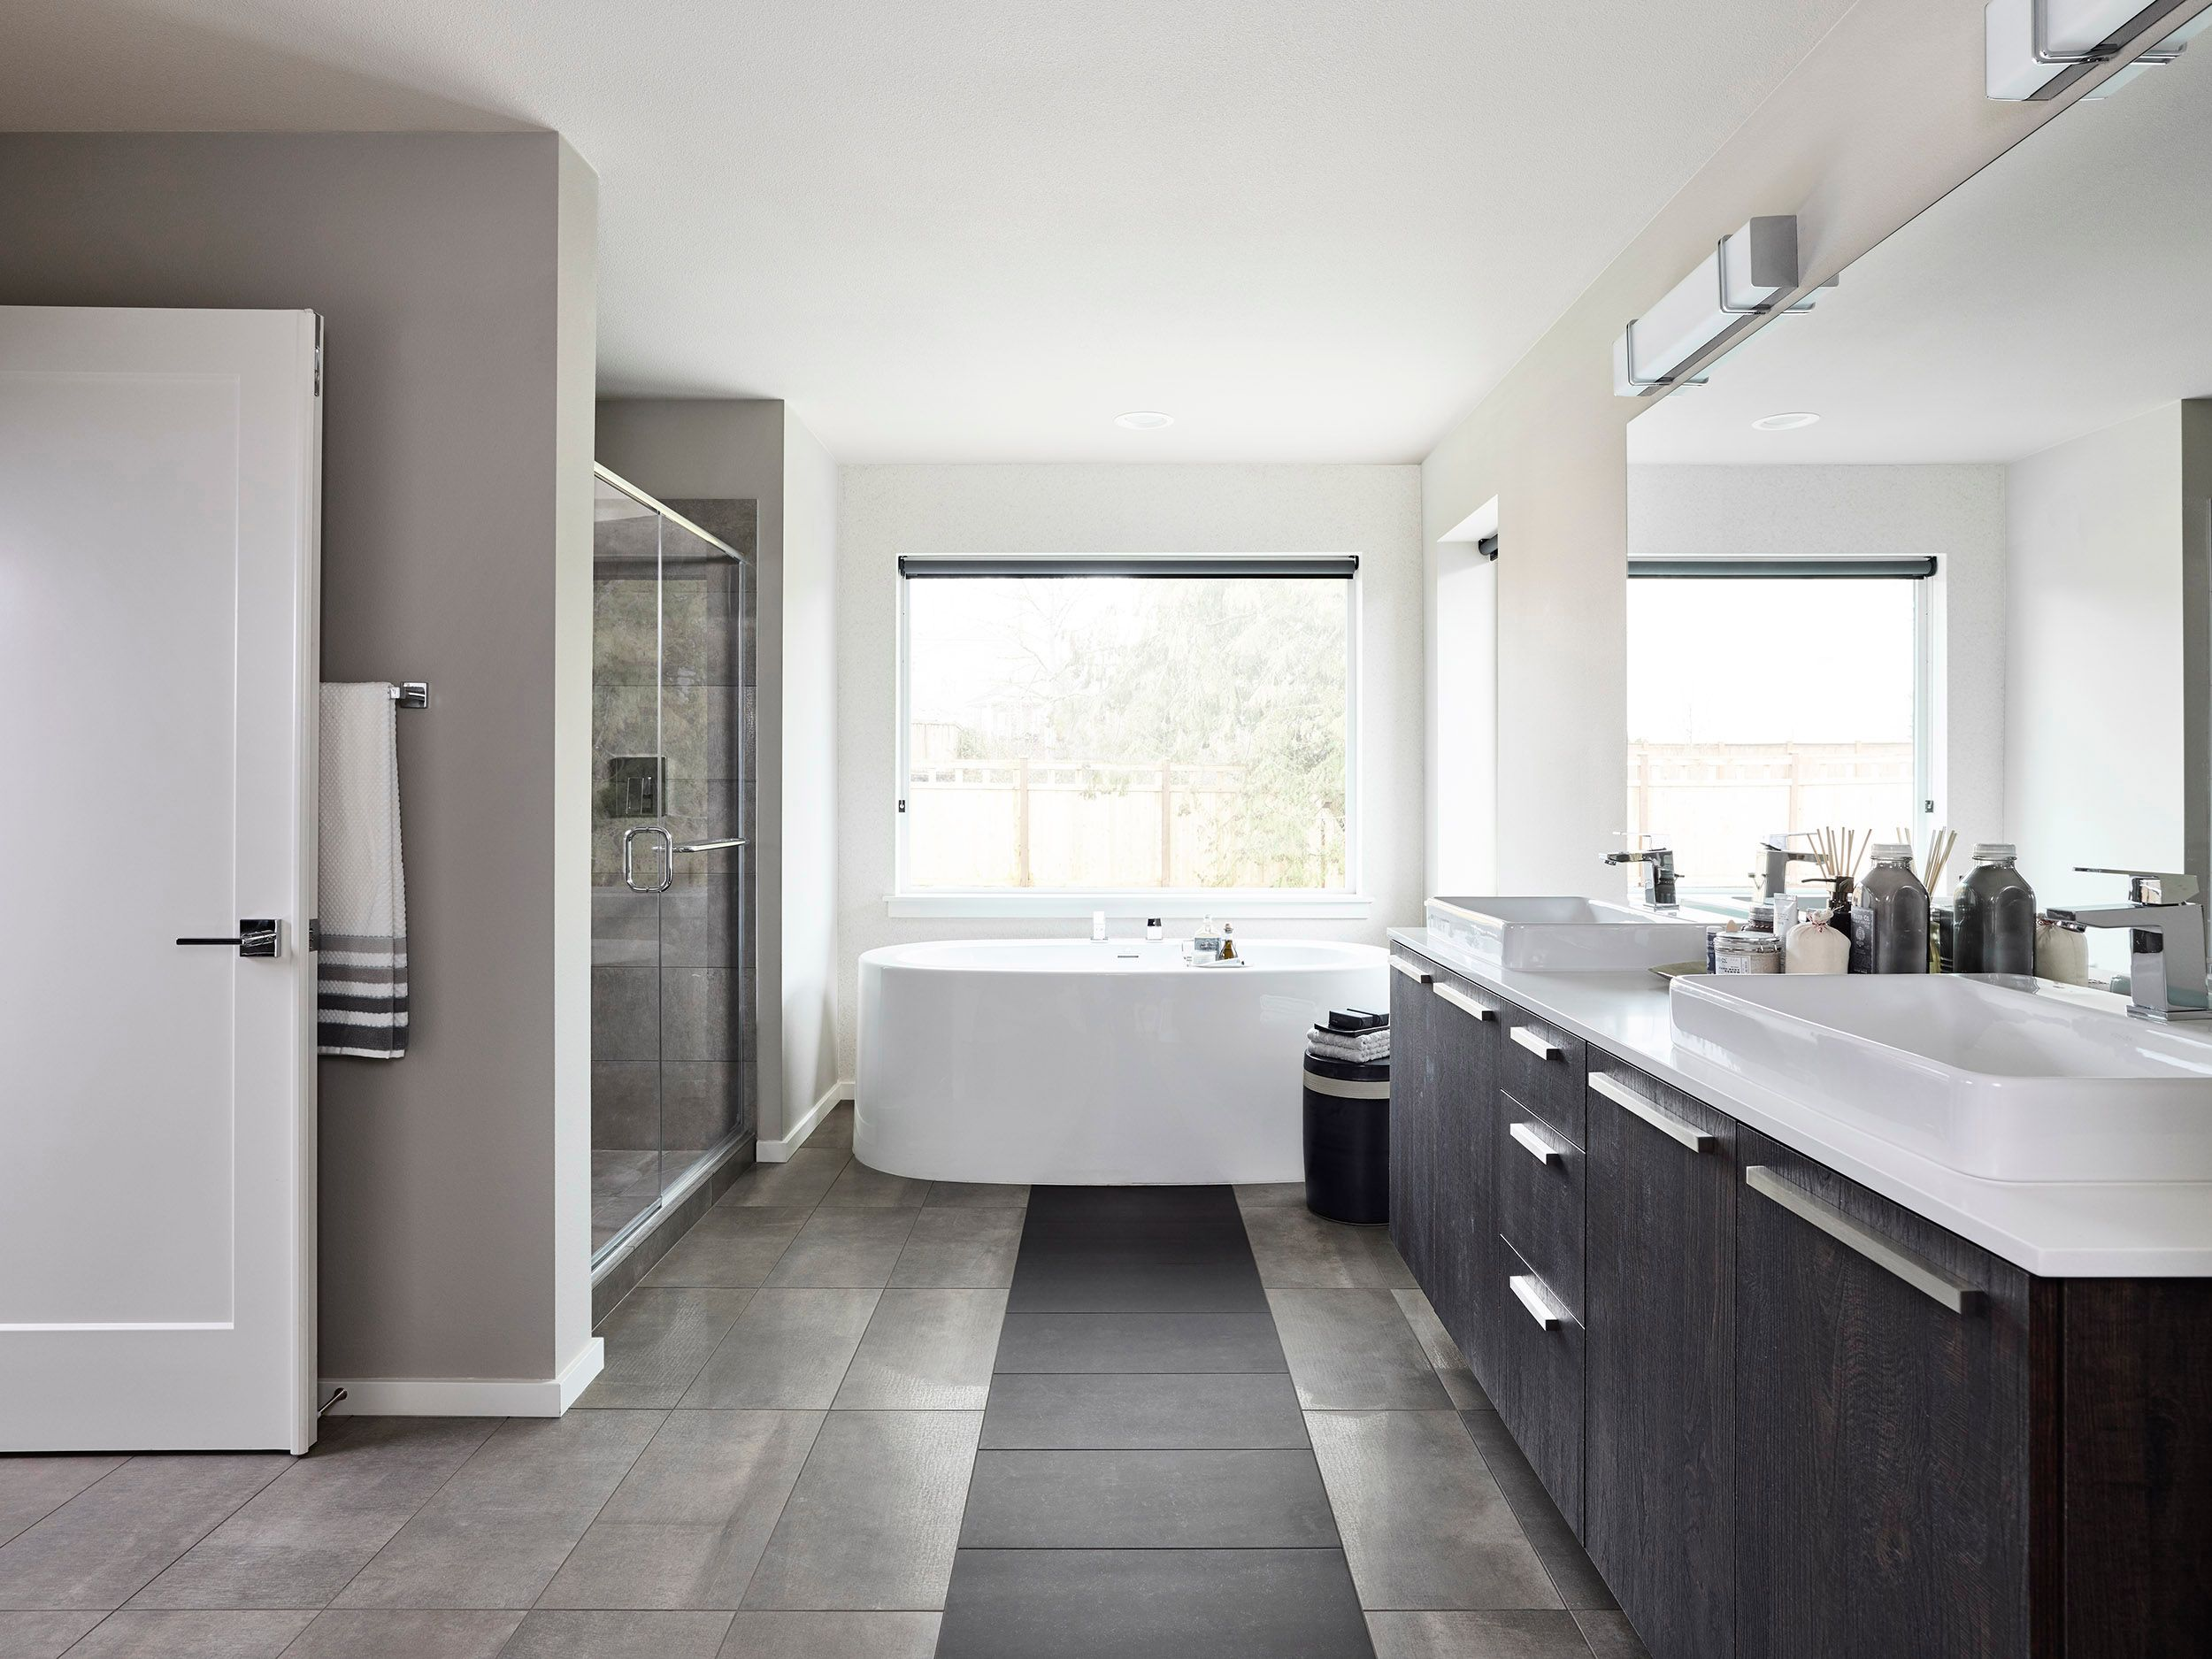 Bathroom featured in the Hudson By MainVue Homes in Bremerton, WA